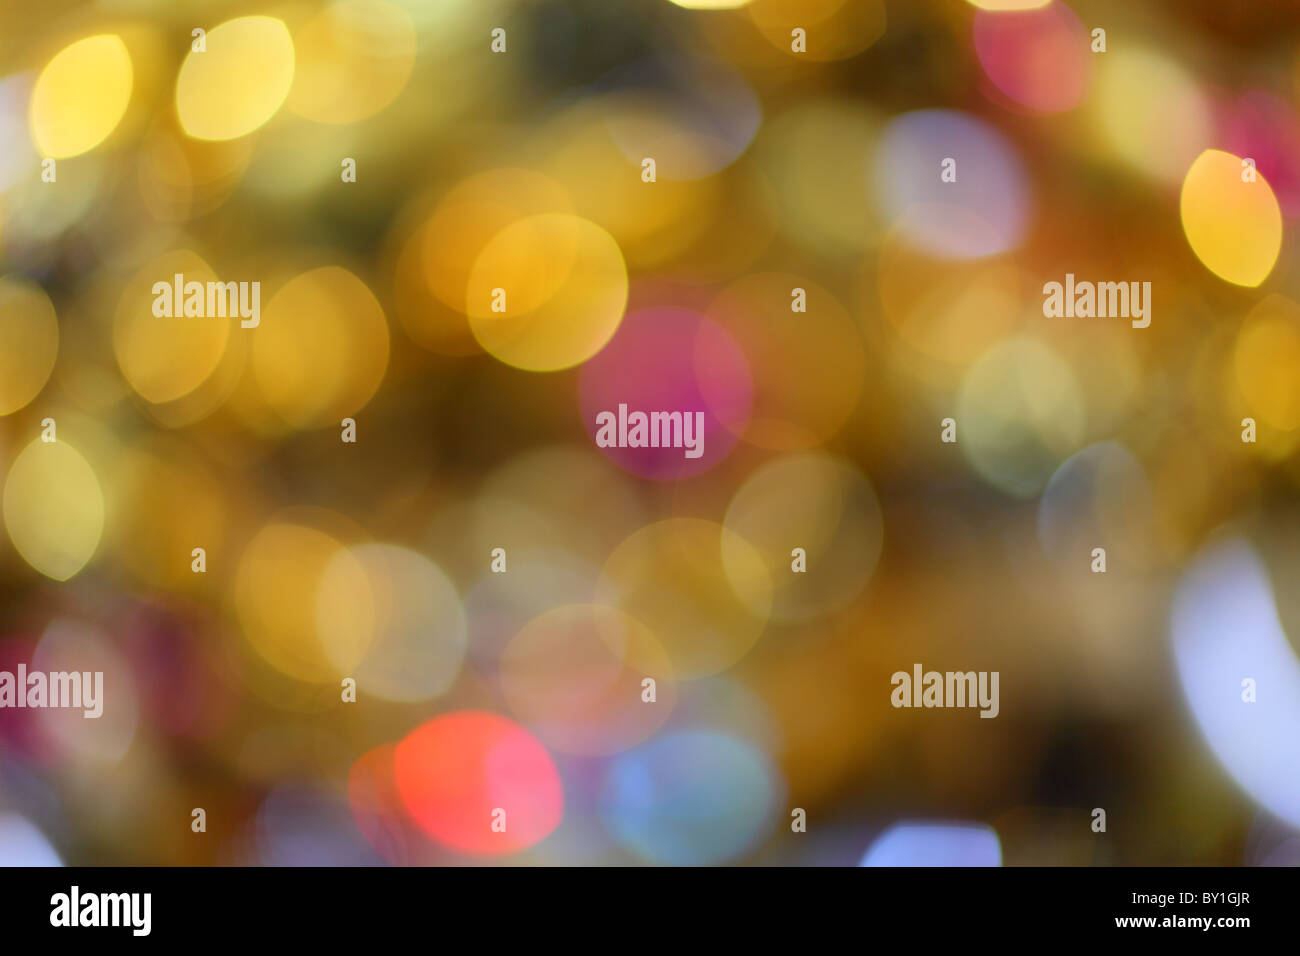 Abstract colorful defocus background - Stock Image